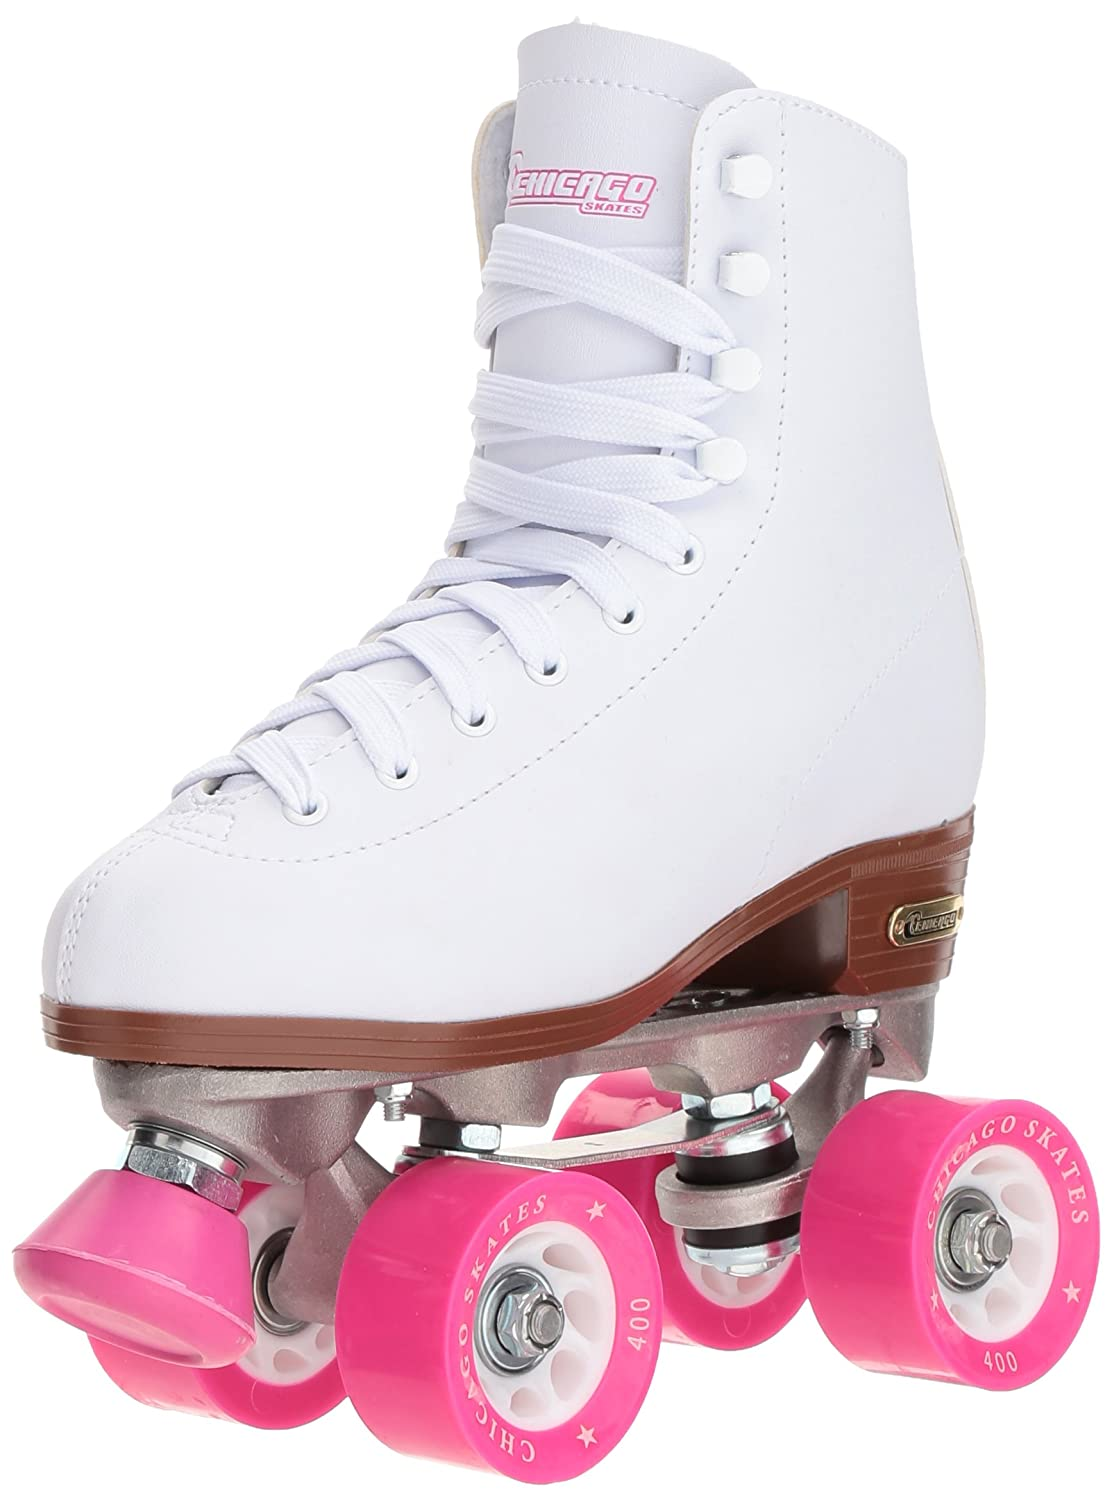 Top 10 Best Roller Skates (2020 Reviews & Buying Guide) 1